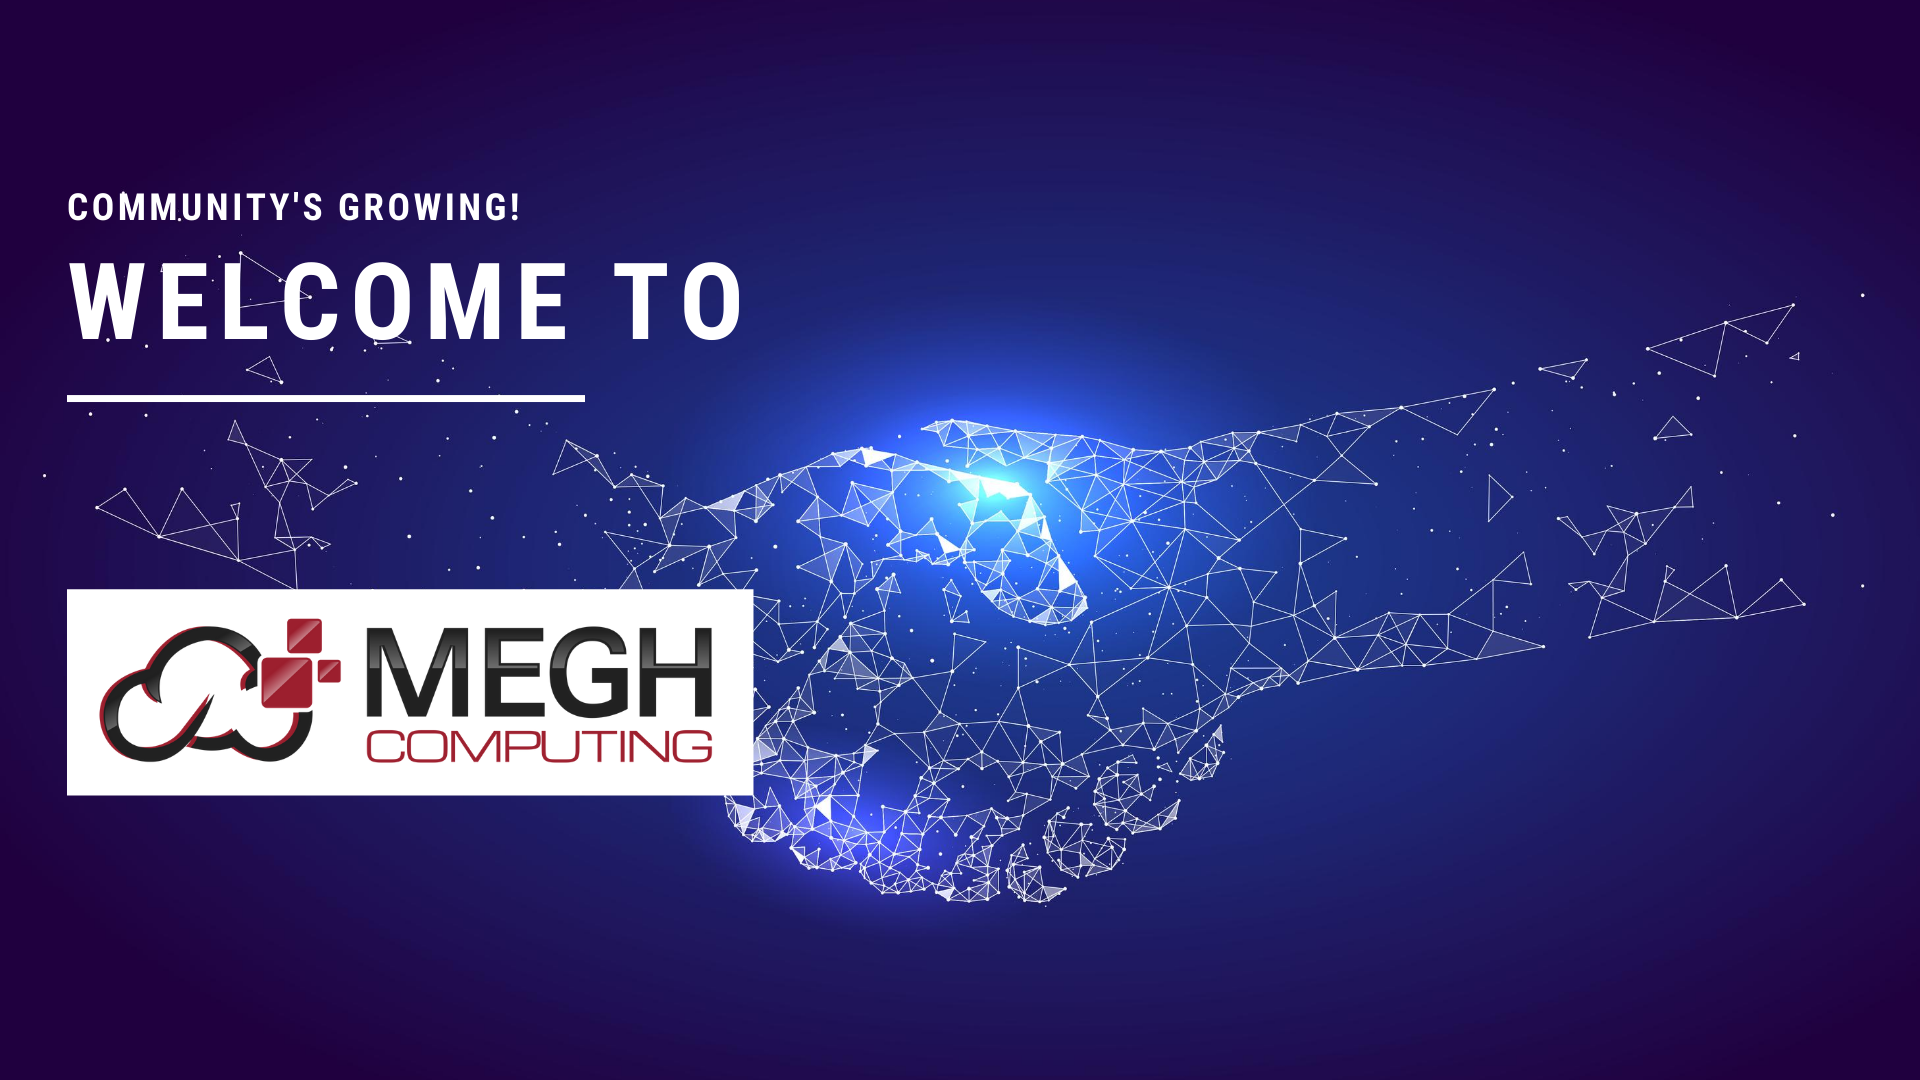 WELCOME TO MEGH COMPUTING!